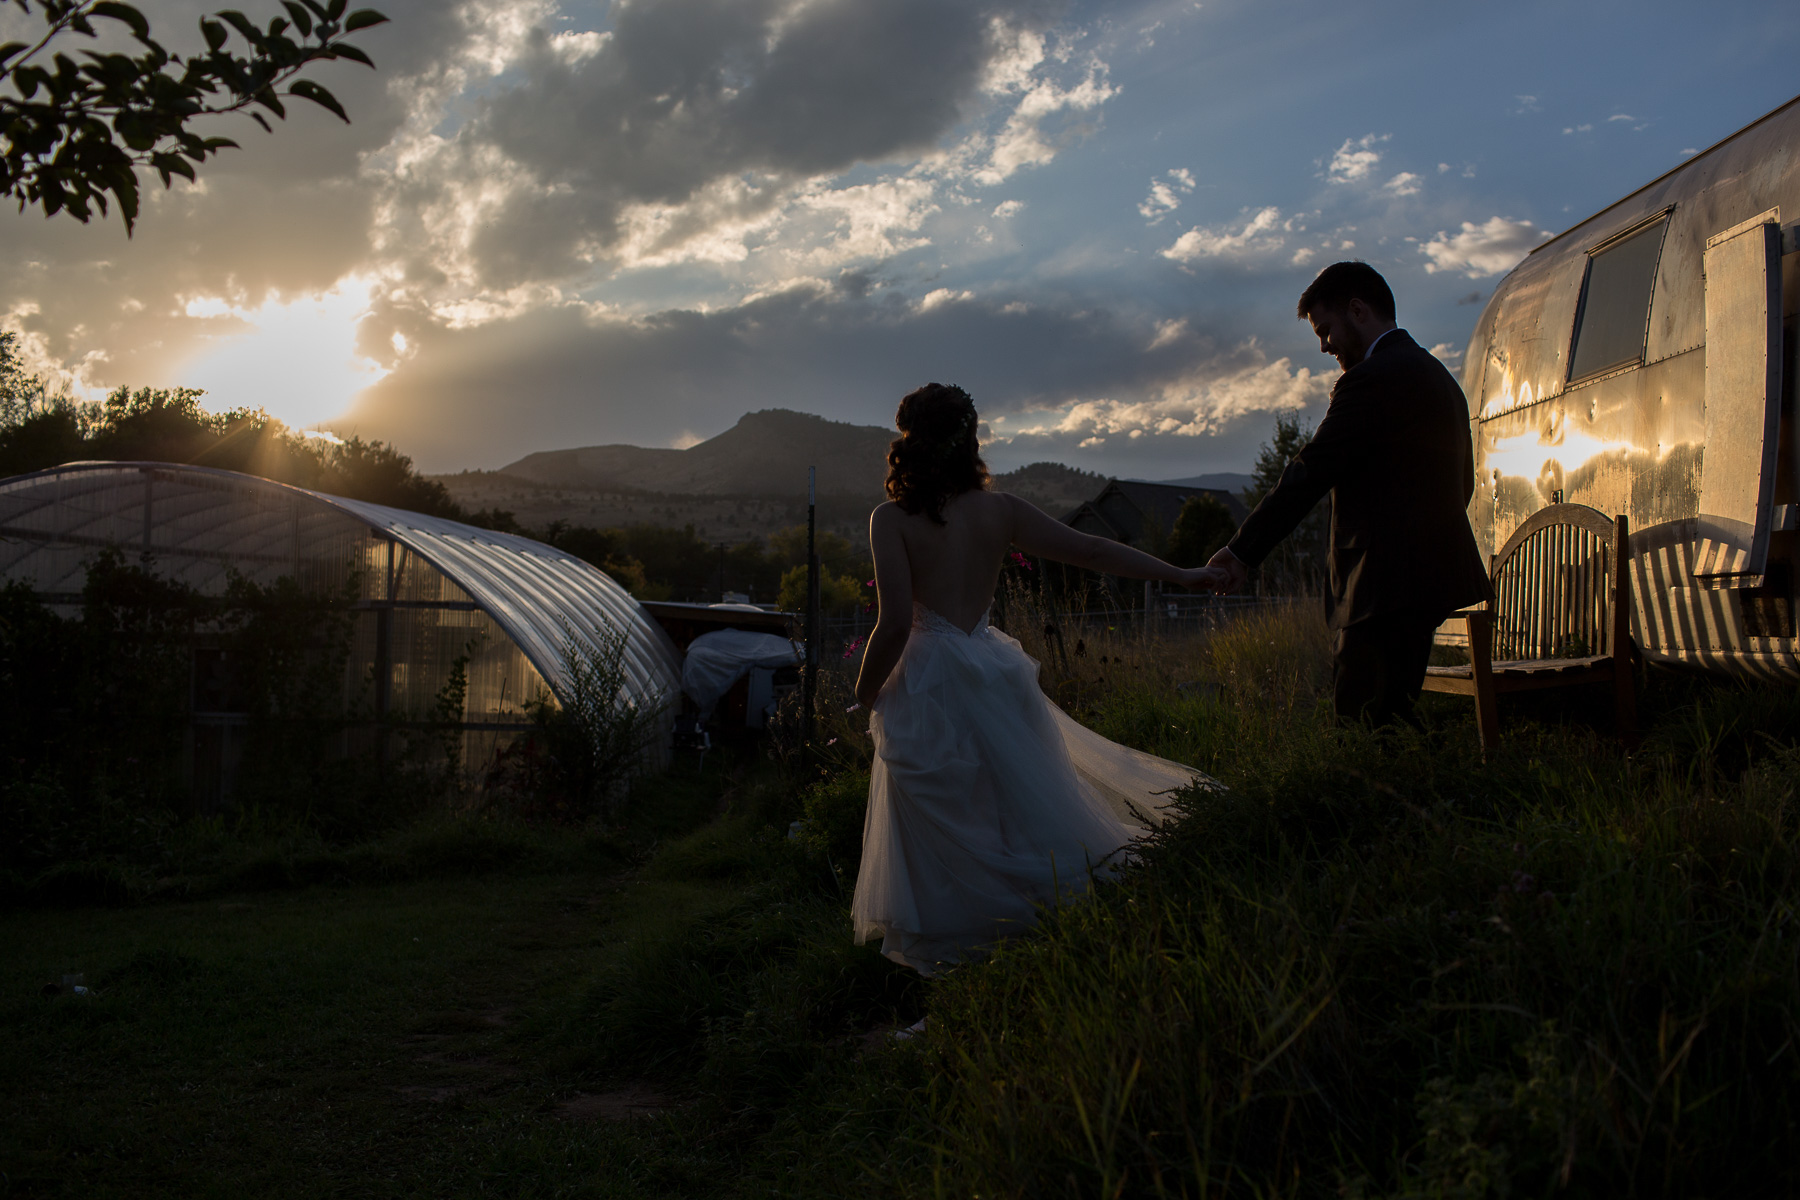 Bride leading groom down a step in the grass at sunset beside an airstream